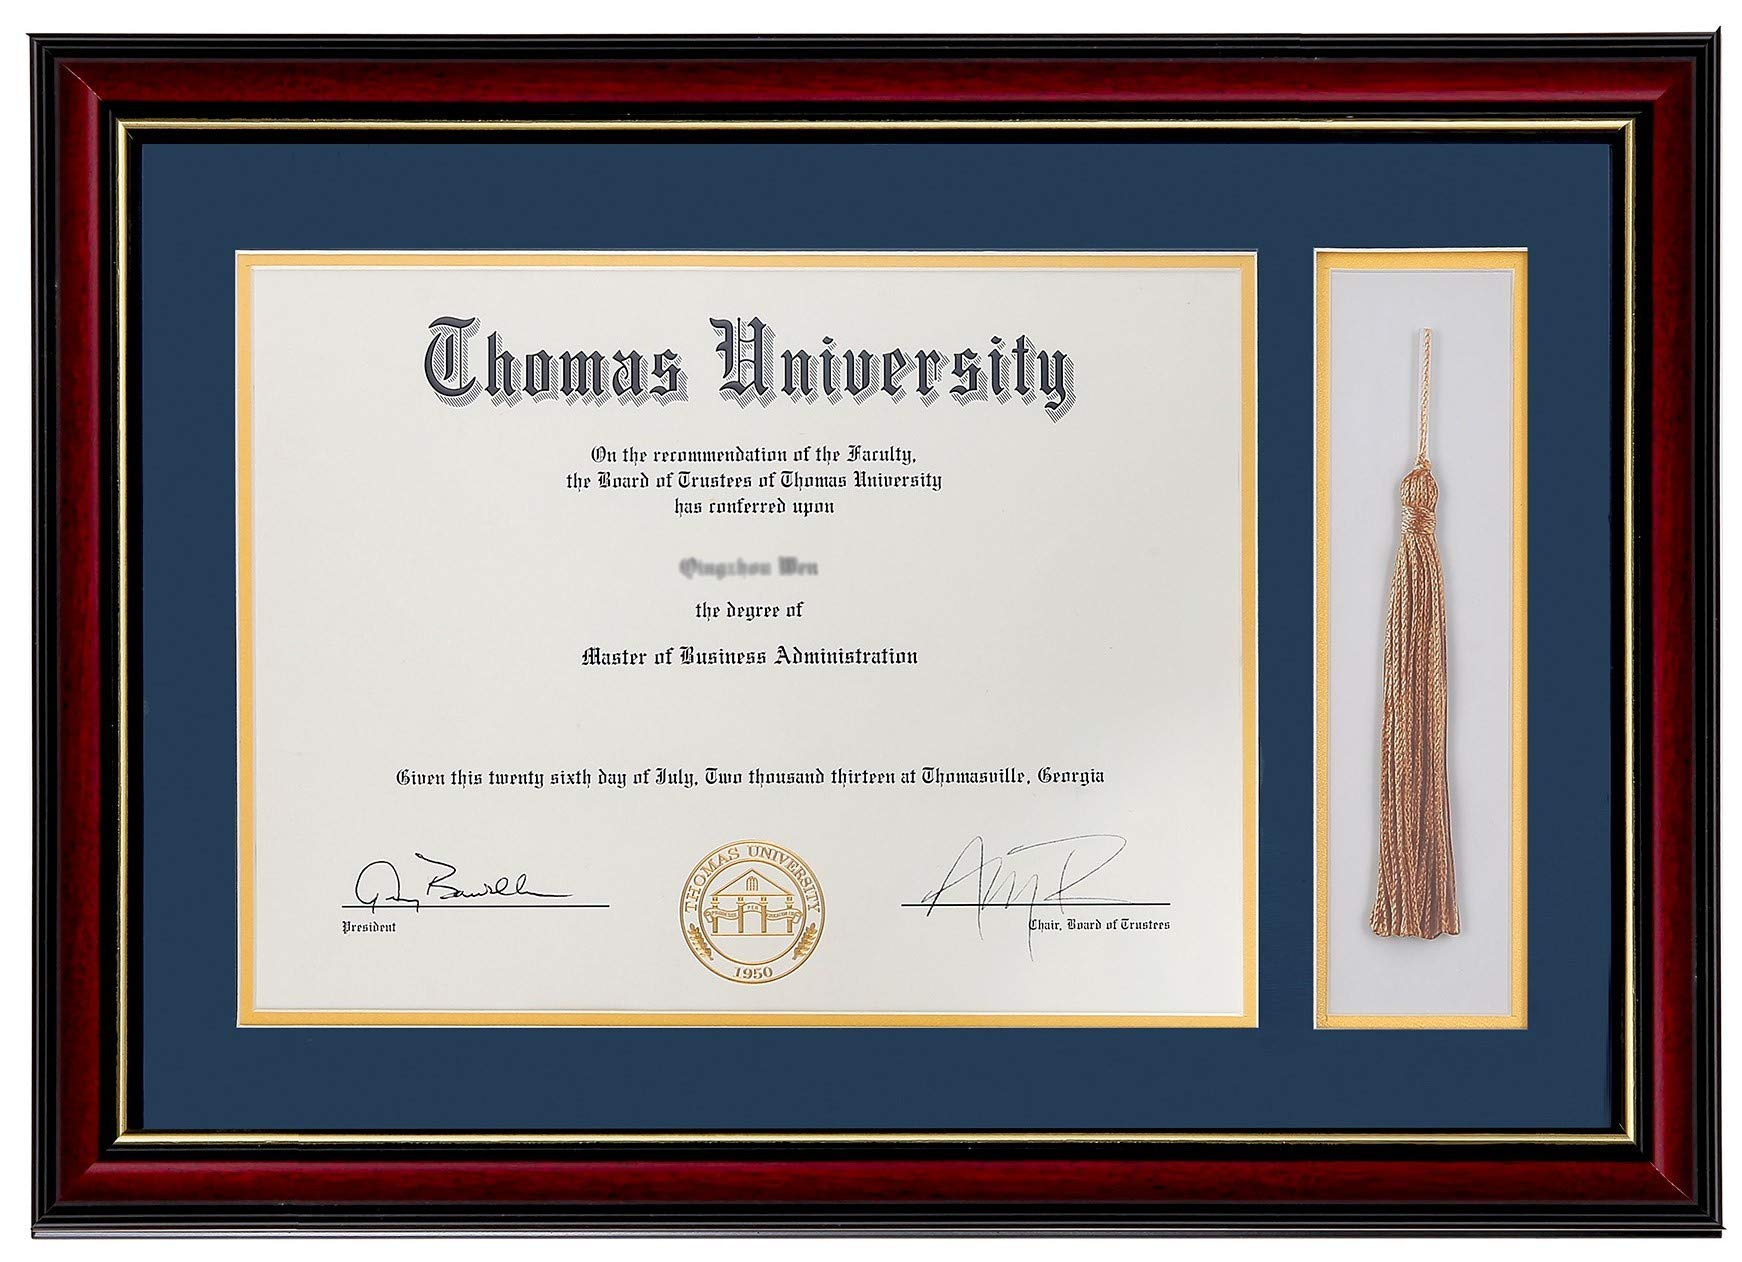 Flagship Diploma Frame with Tassel Shadow Box Real Wood & Glass Golden Rim 11x16 Frame for 8.5x11 Certificate and Document (Double Mat, Navy Blue Mat with Golden Rim) by Flagship Frames